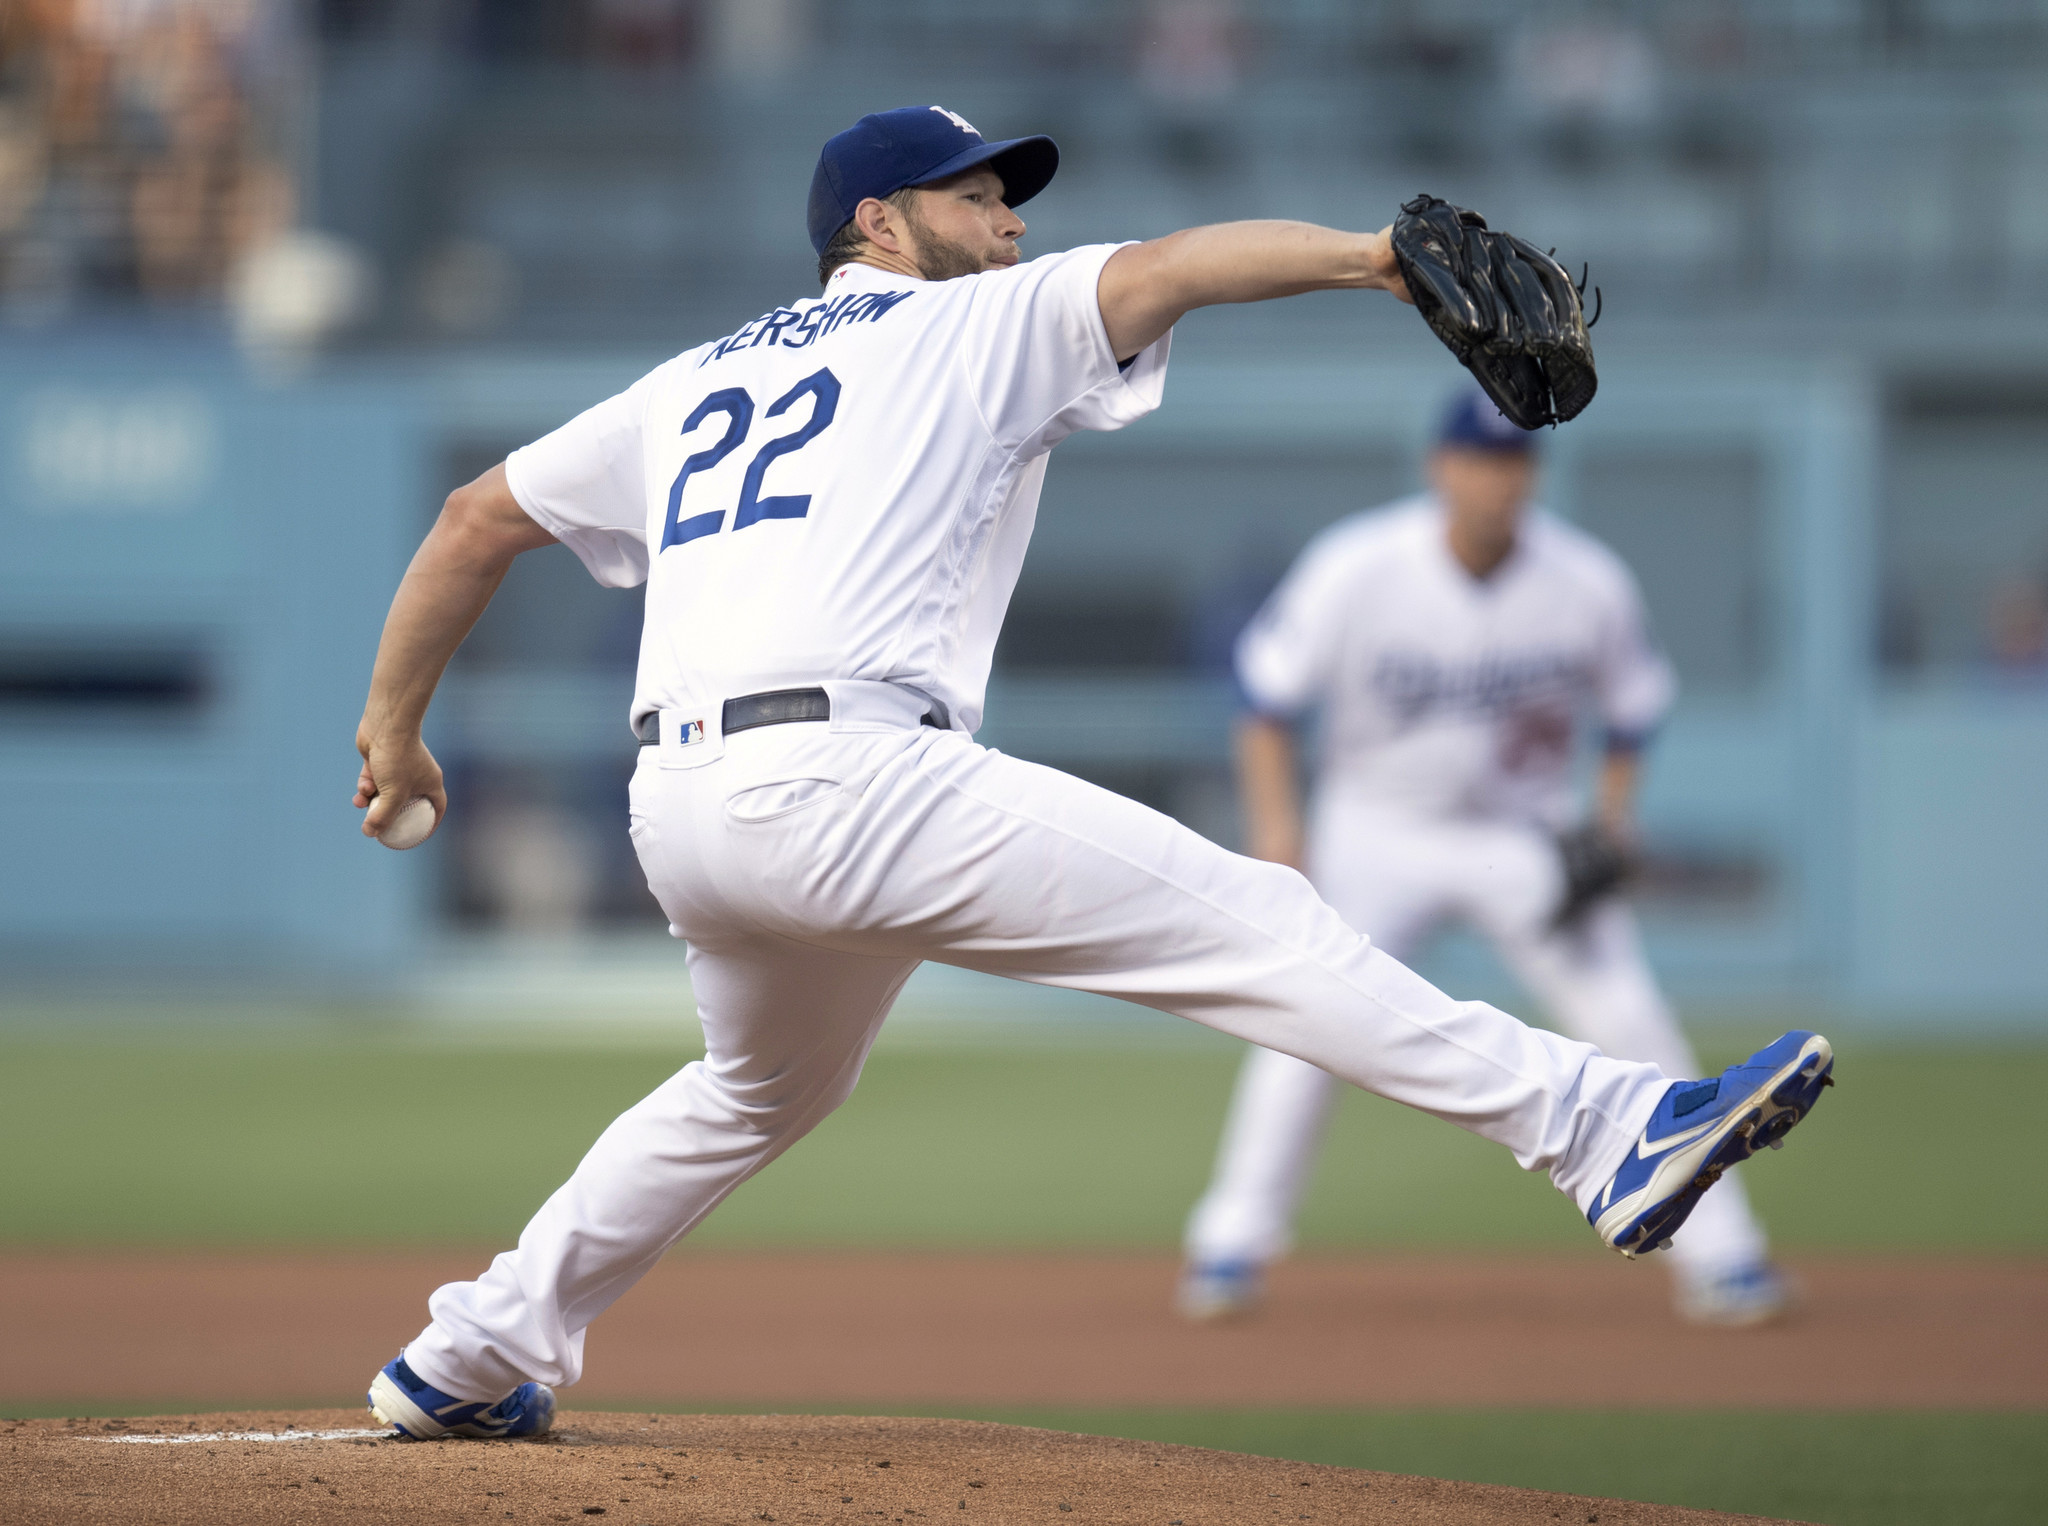 Dodgers pitcher Clayton Kershaw wins on grit and not power